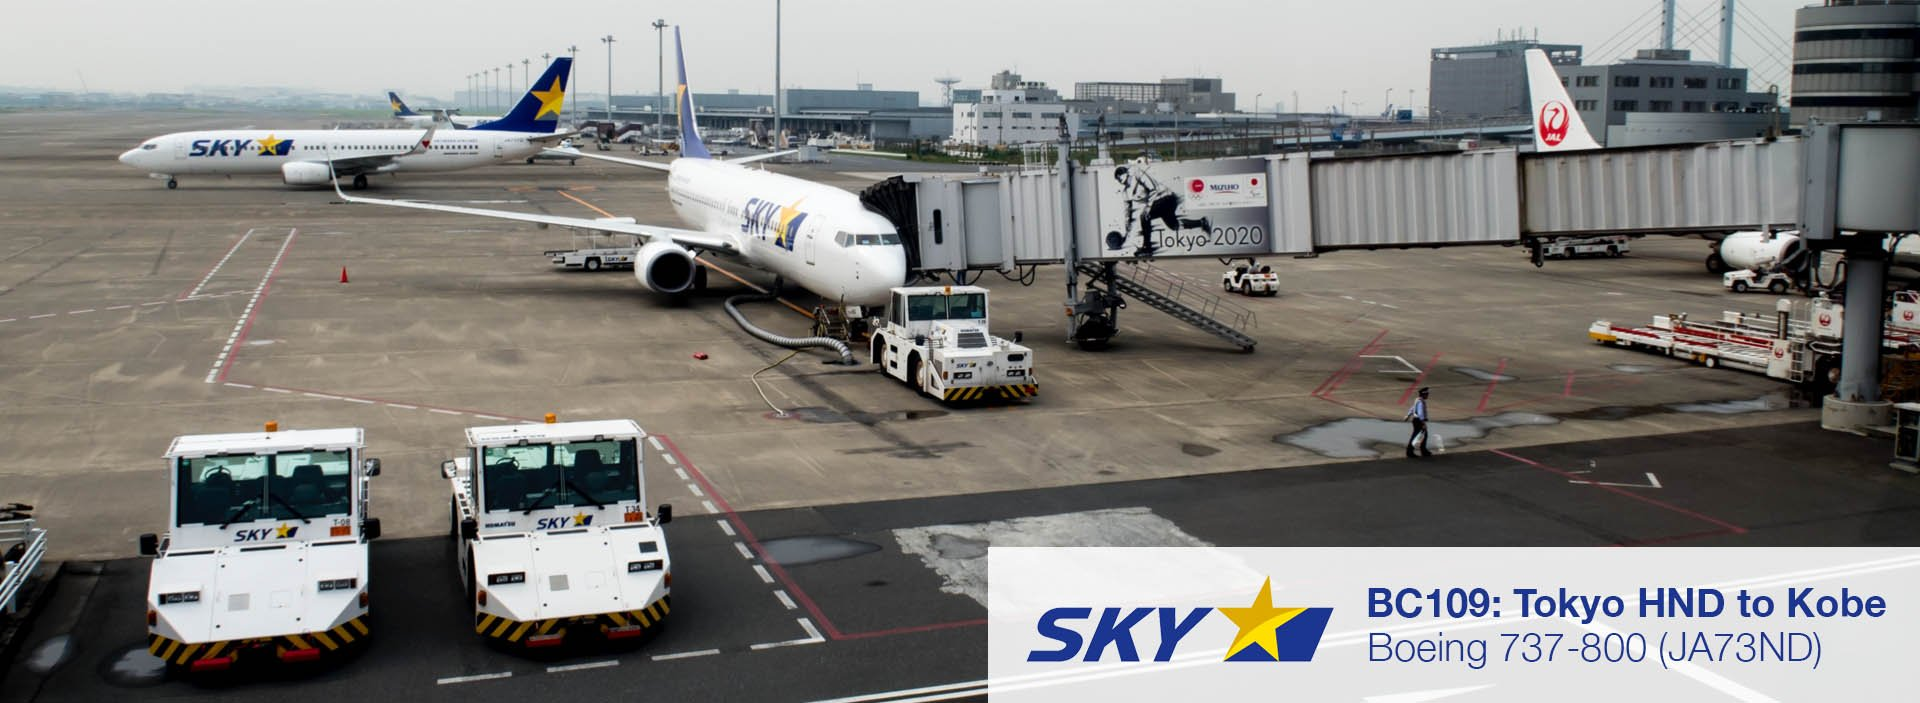 Flight Report: Skymark Airlines 737-800 from Tokyo HND to Kobe